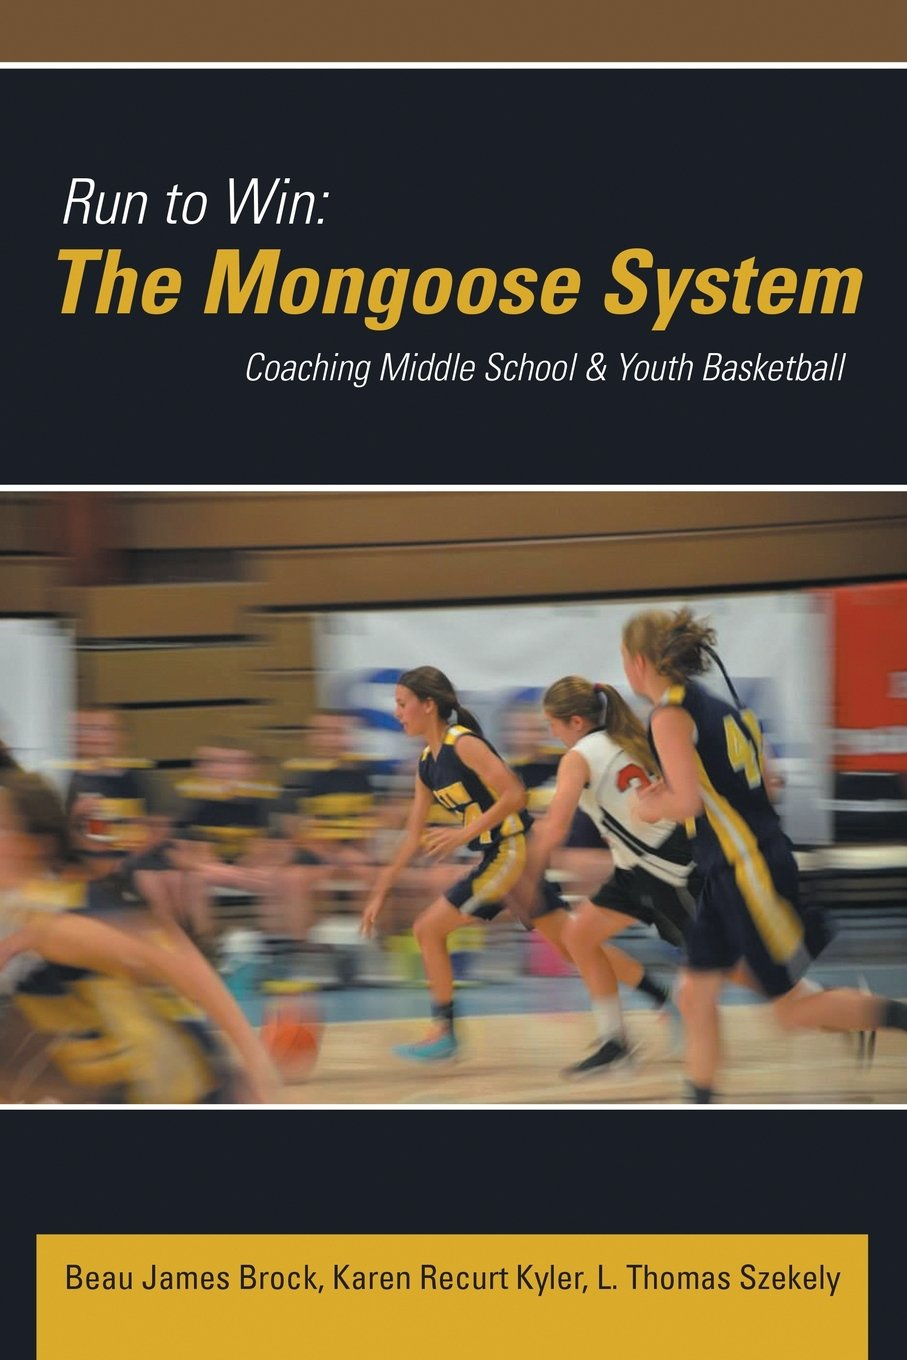 Run To Win The Mongoose System Coaching Middle School Youth Central Locking Wiring Diagram Basketball Beau James Brock Karen Recurt Kyler L Thomas Szekely 9781483408828